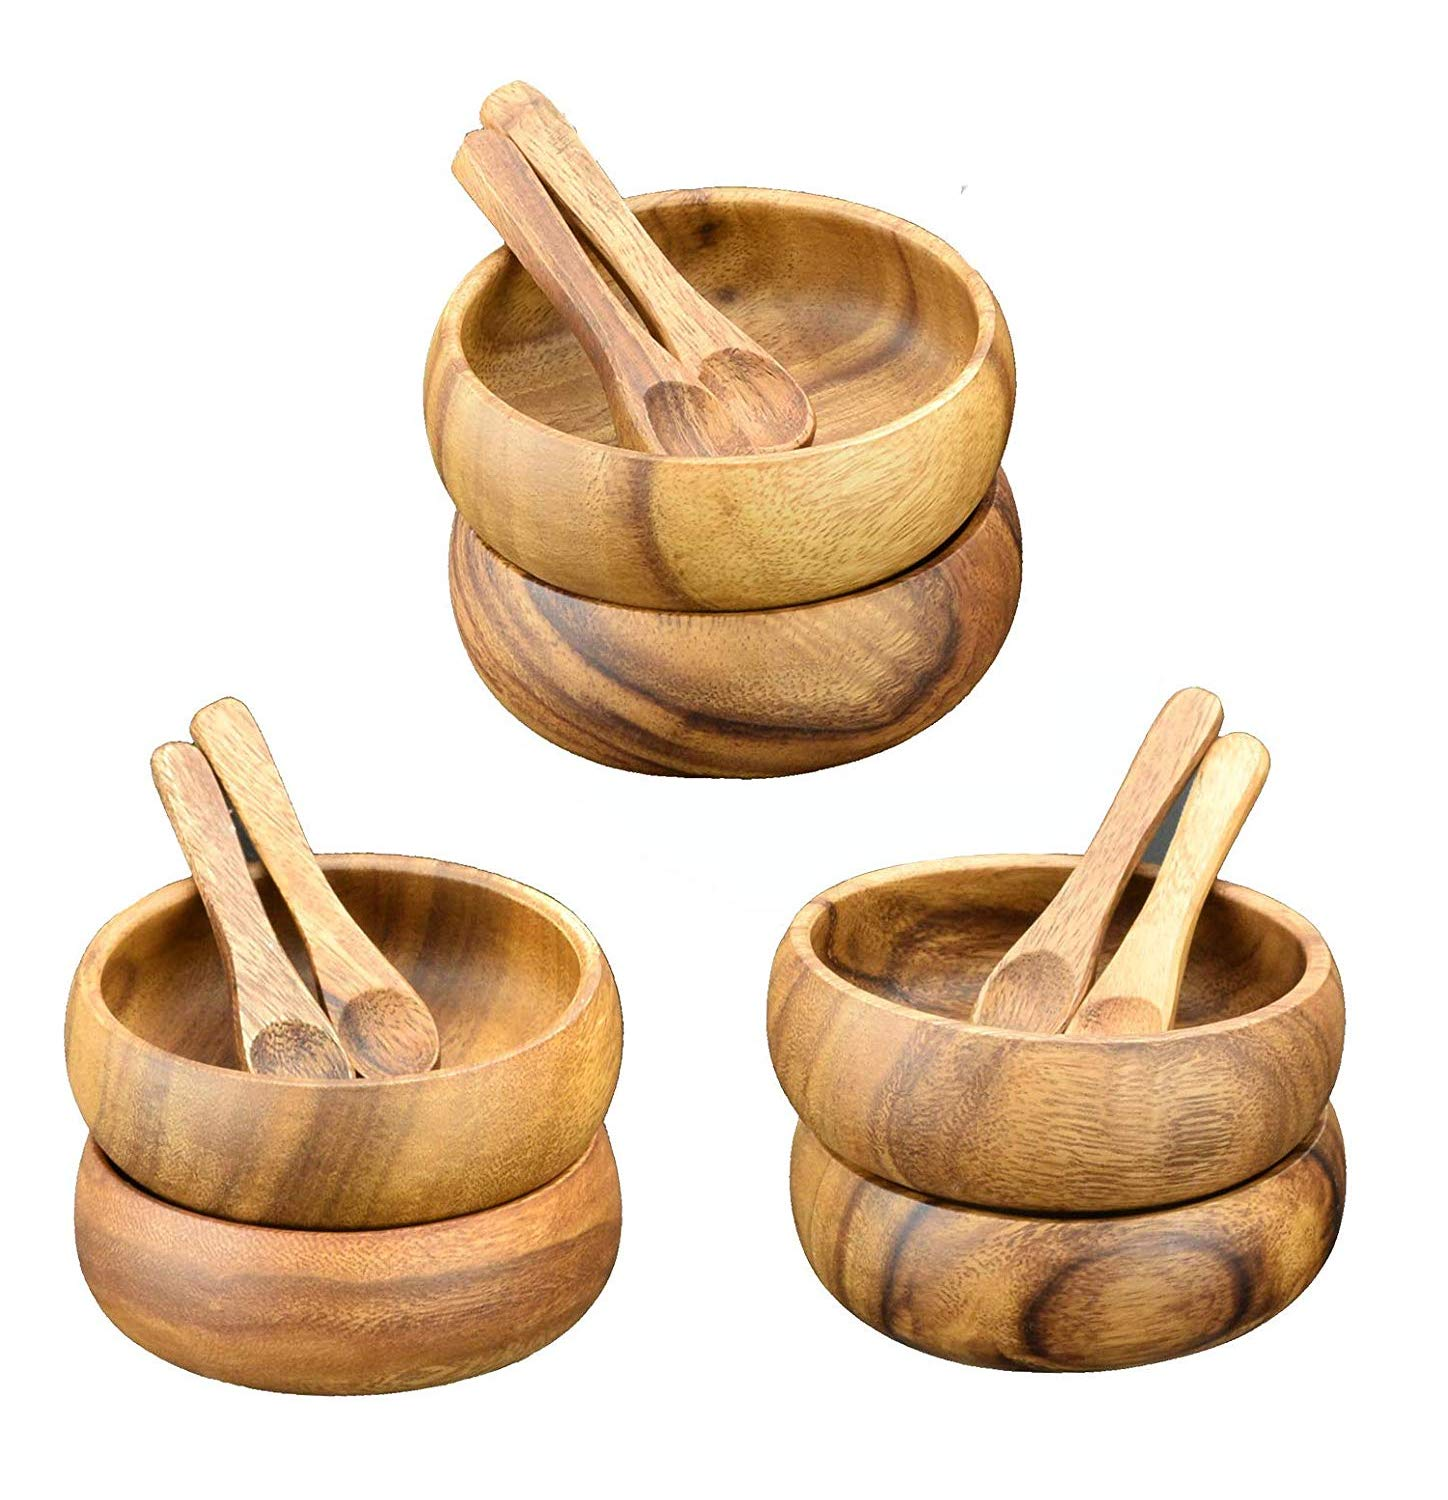 Acaciaware Acacia Wood Dipping and Sauce Bowls, 4-Inch Diam by 1.5-Inch Round Dipping and Nut Bowls with spoons, Set of 6 (12 pcs total)